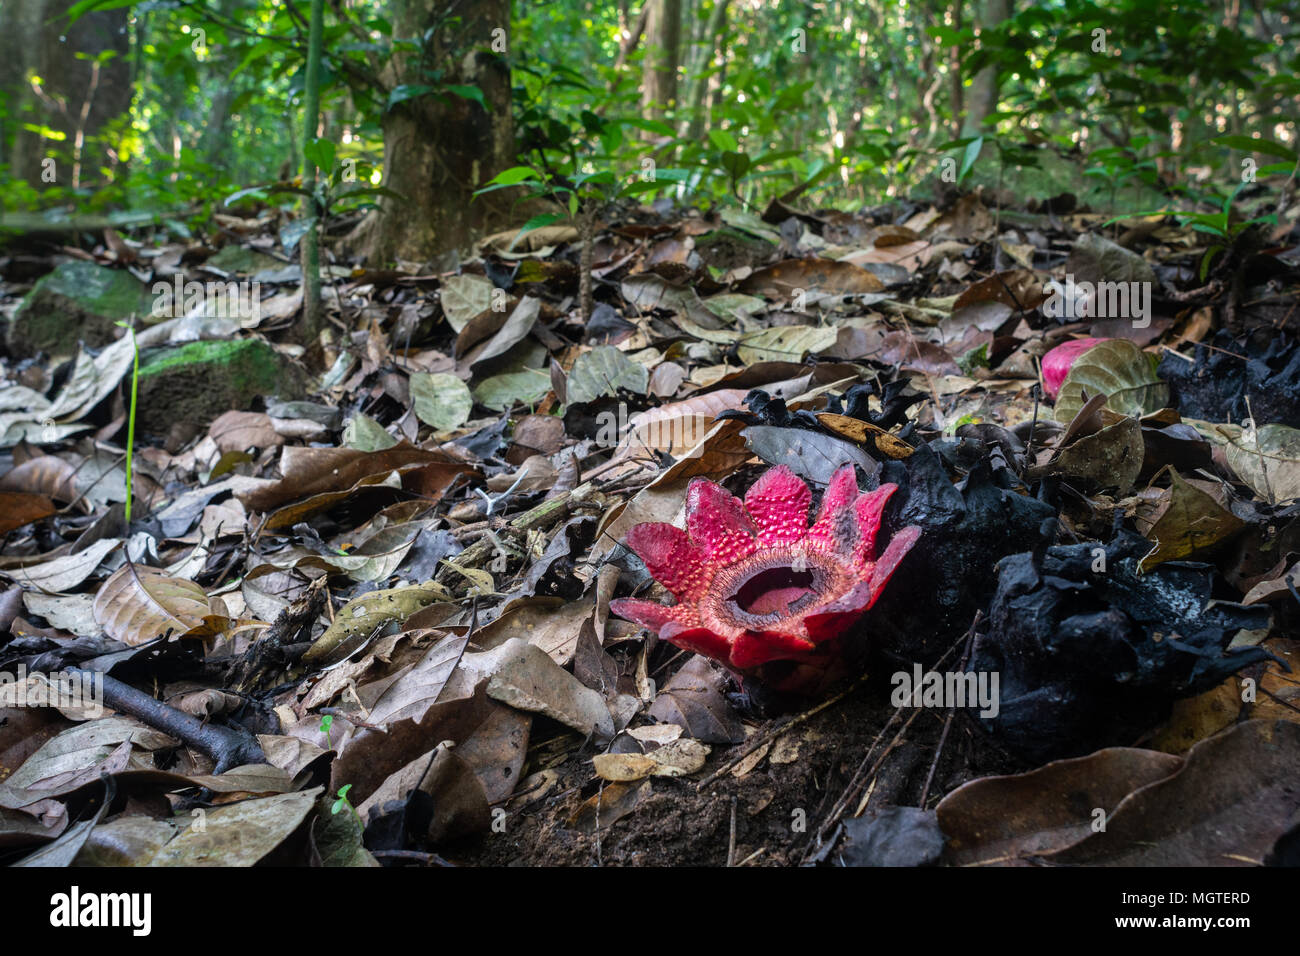 Kaeng Krachan National Park's Sapria himalayana is a root parasite dependent on its host plant for water and nutrients. It is related to the Rafflesia. Stock Photo